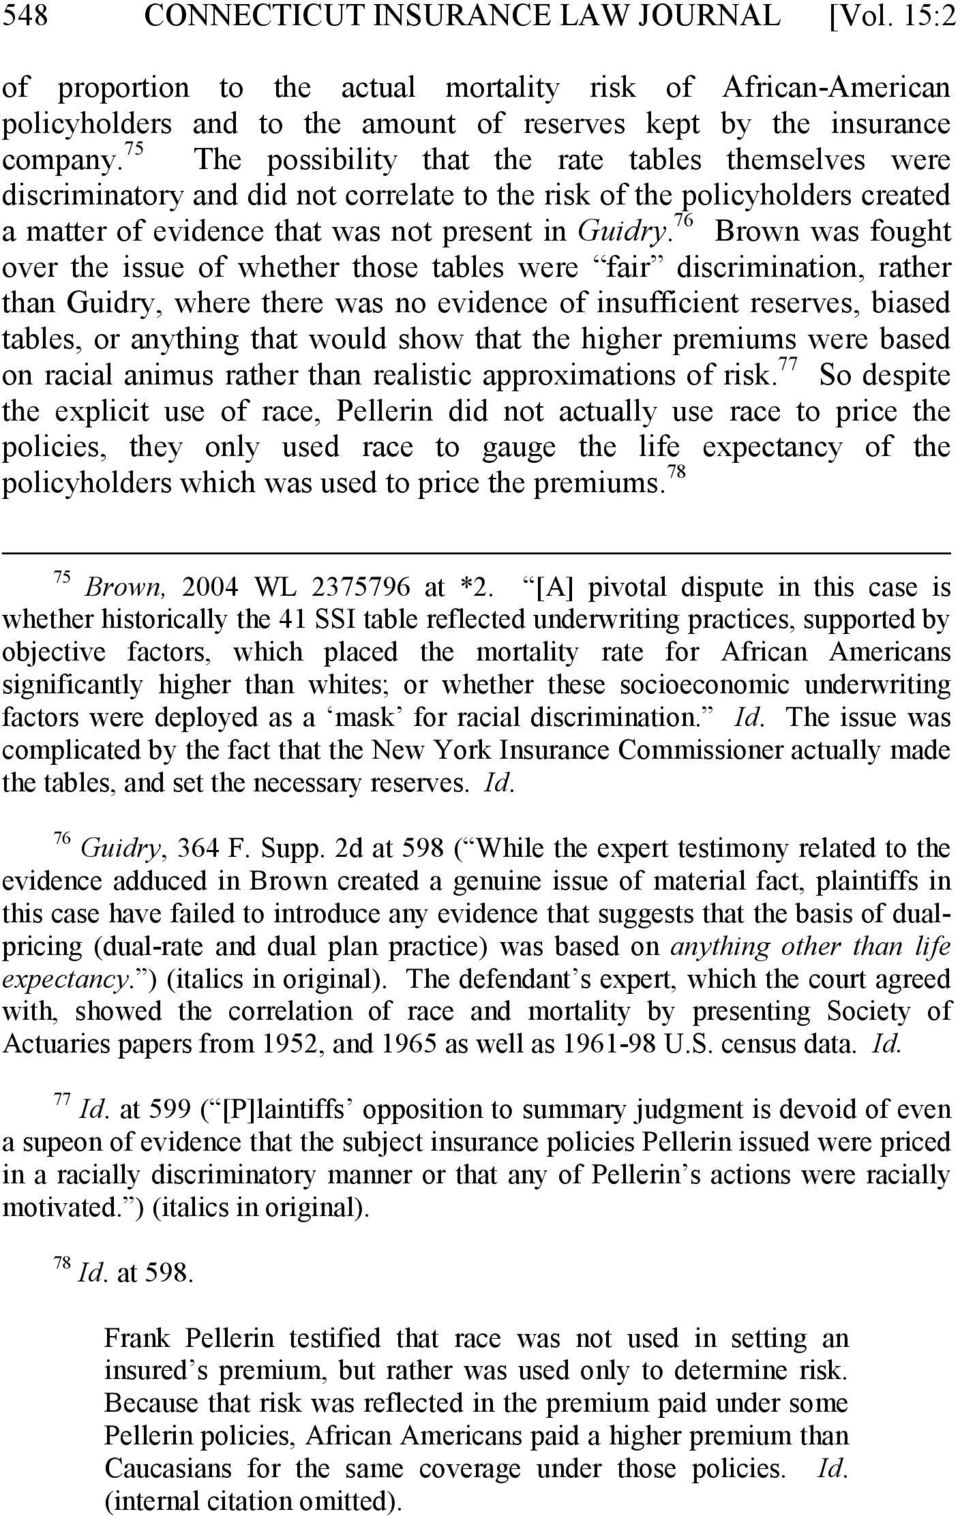 76 Brown was fought over the issue of whether those tables were fair discrimination, rather than Guidry, where there was no evidence of insufficient reserves, biased tables, or anything that would